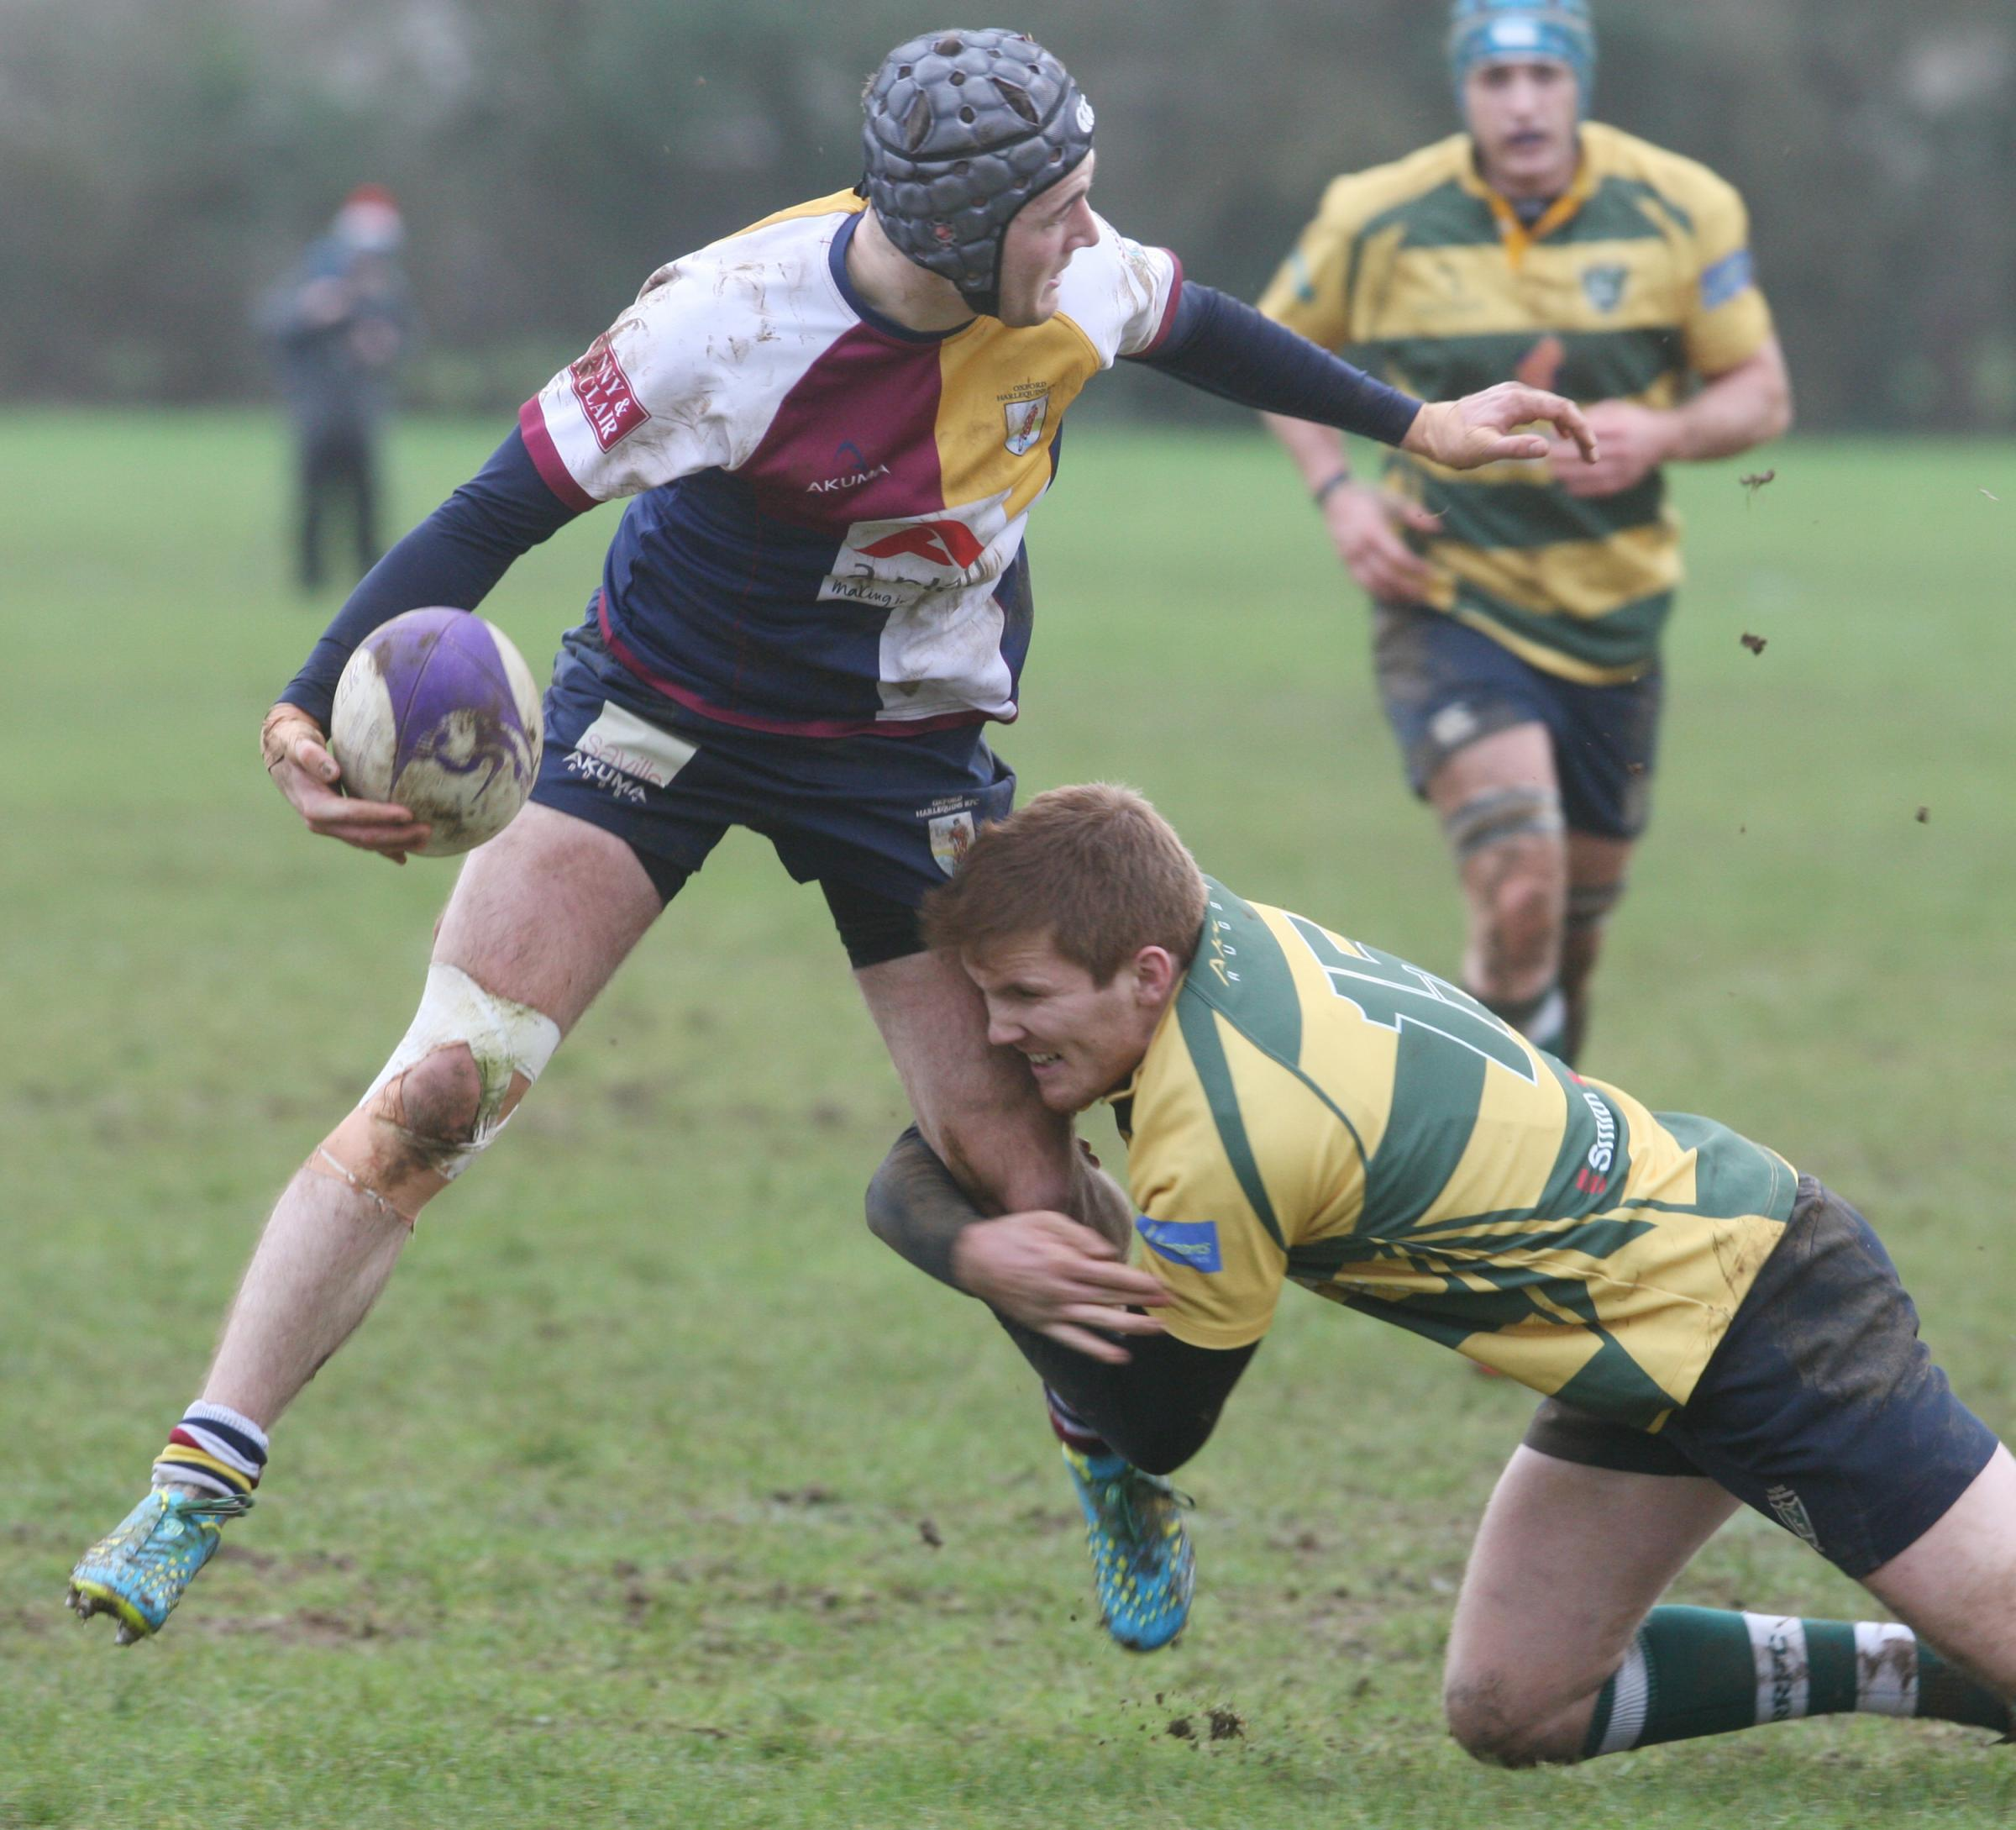 Ed Yeats, pictured in action for Oxford Harlequins earlier this season, scored Oxfordshire's opening try in their 27-21 defeat at Warwickshire on Saturday